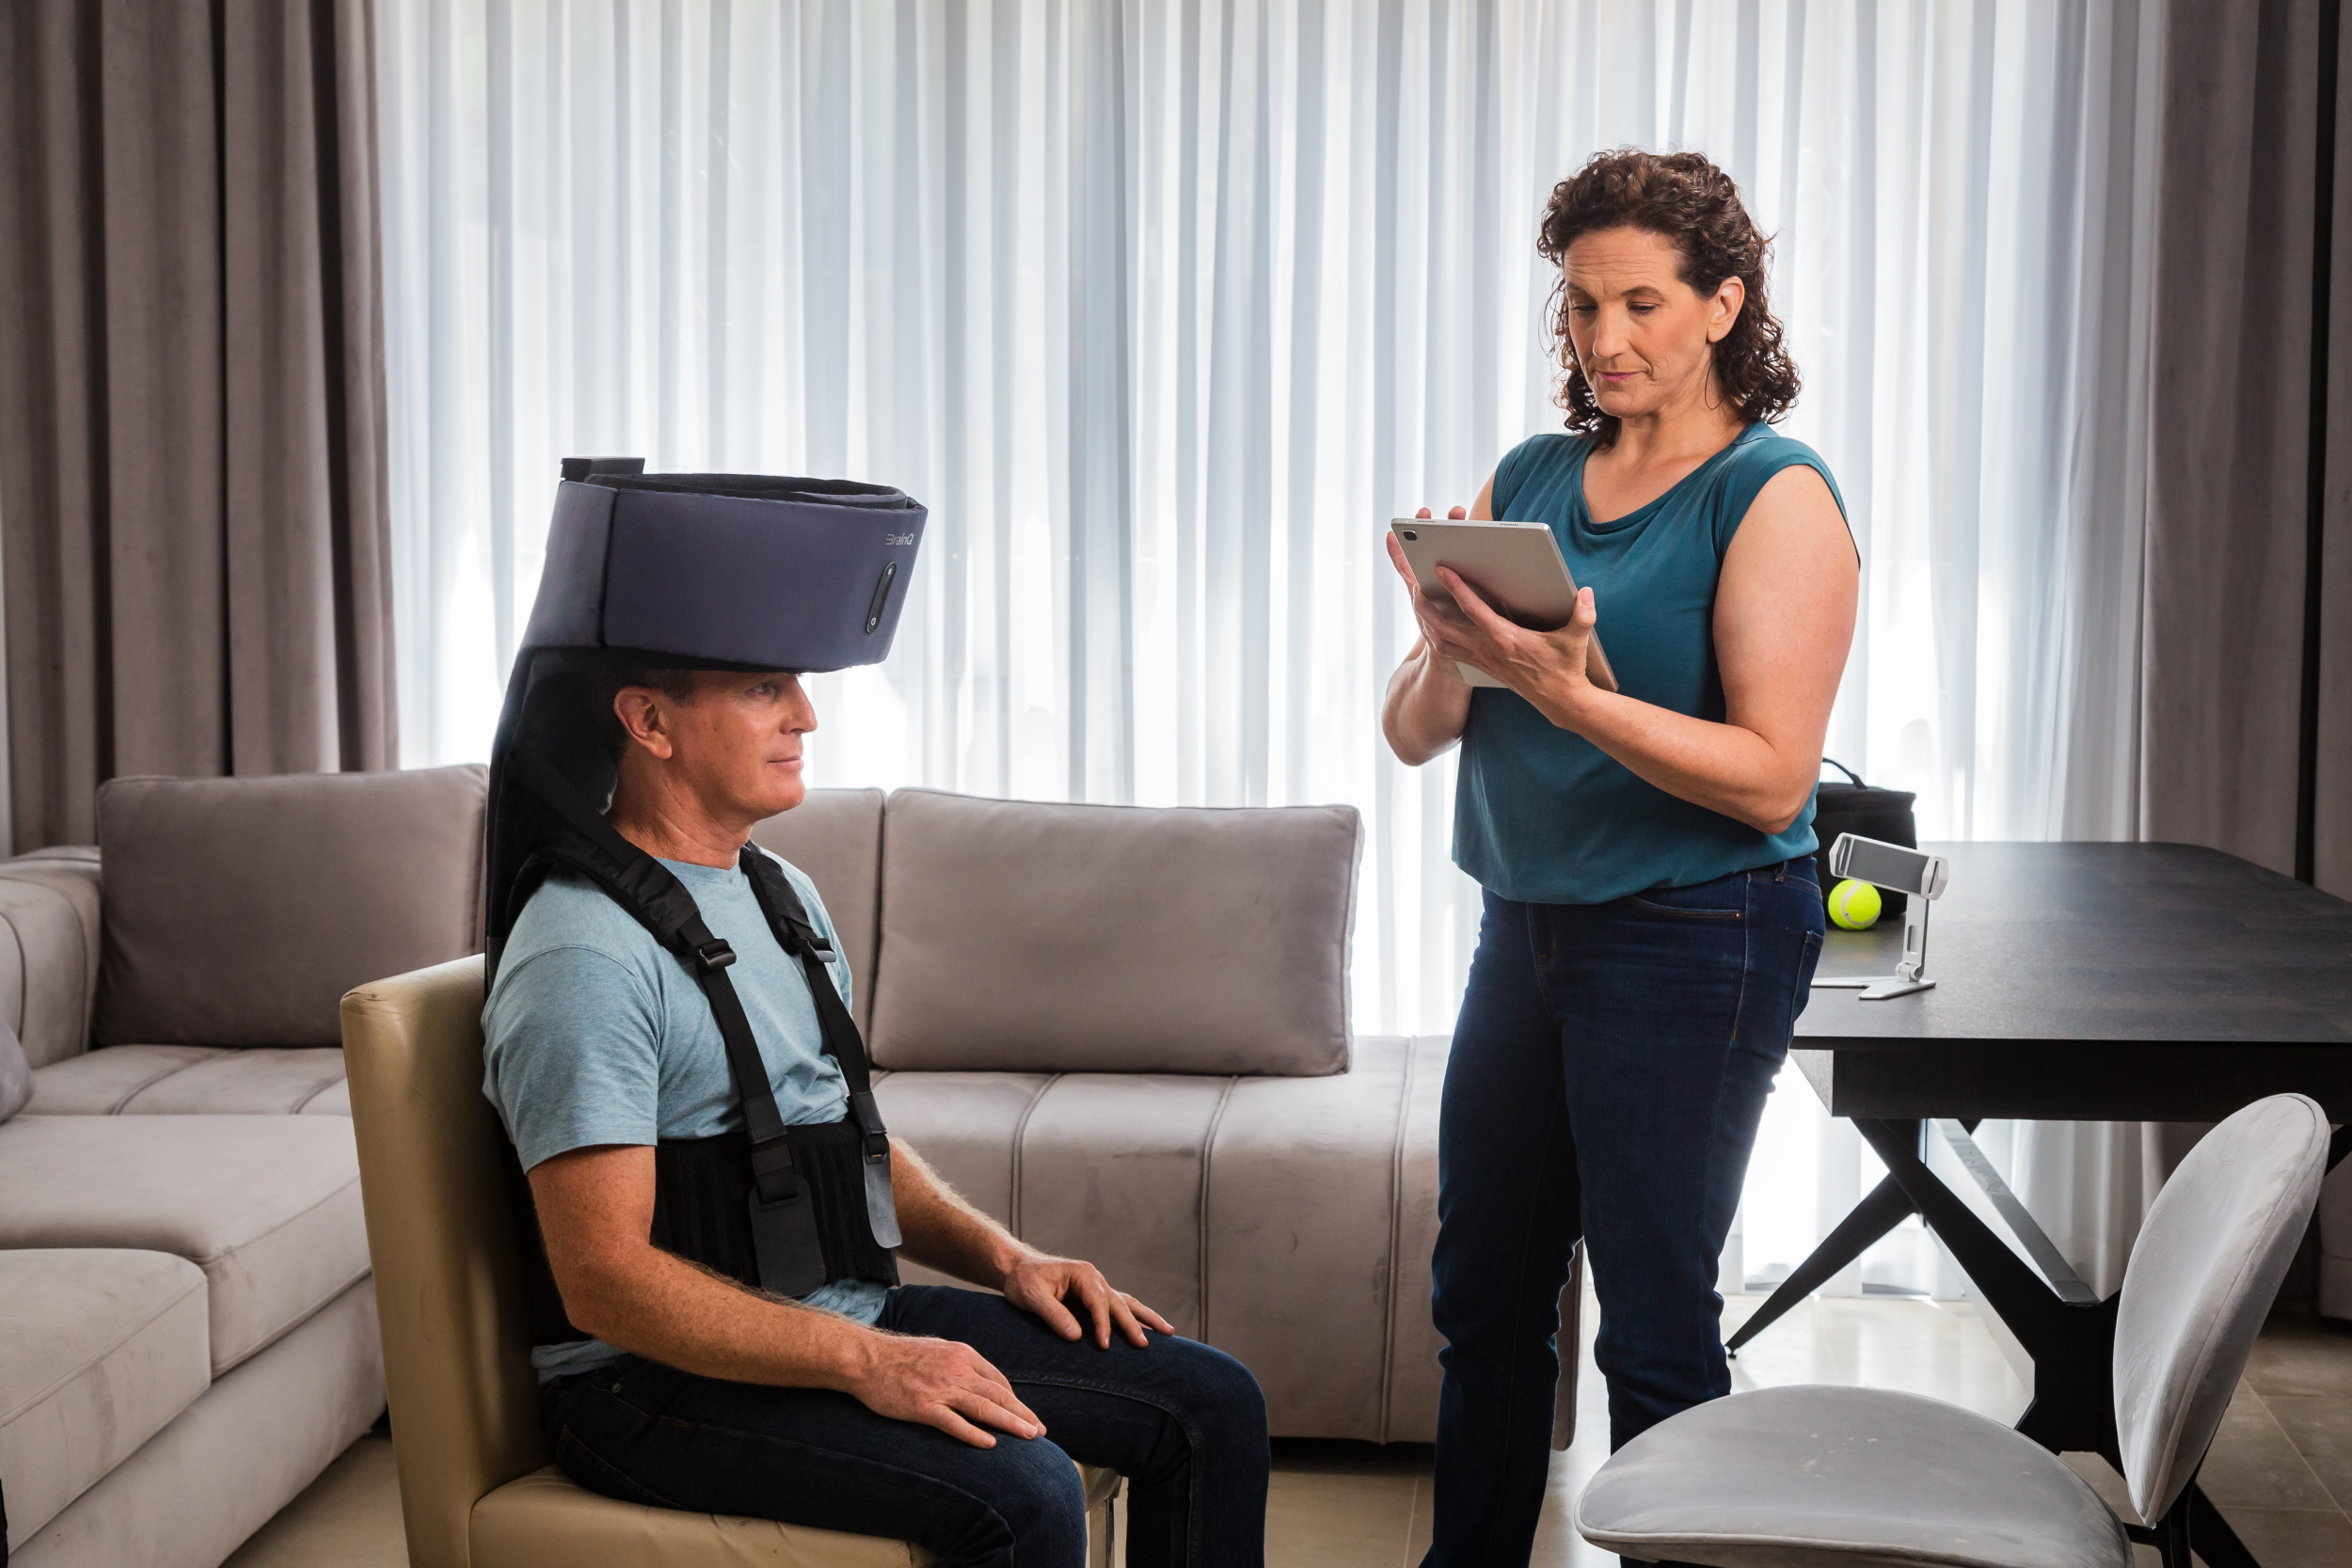 A man wears a BrainQ headset while sitting in a chair, while a woman operates a tablet near him.